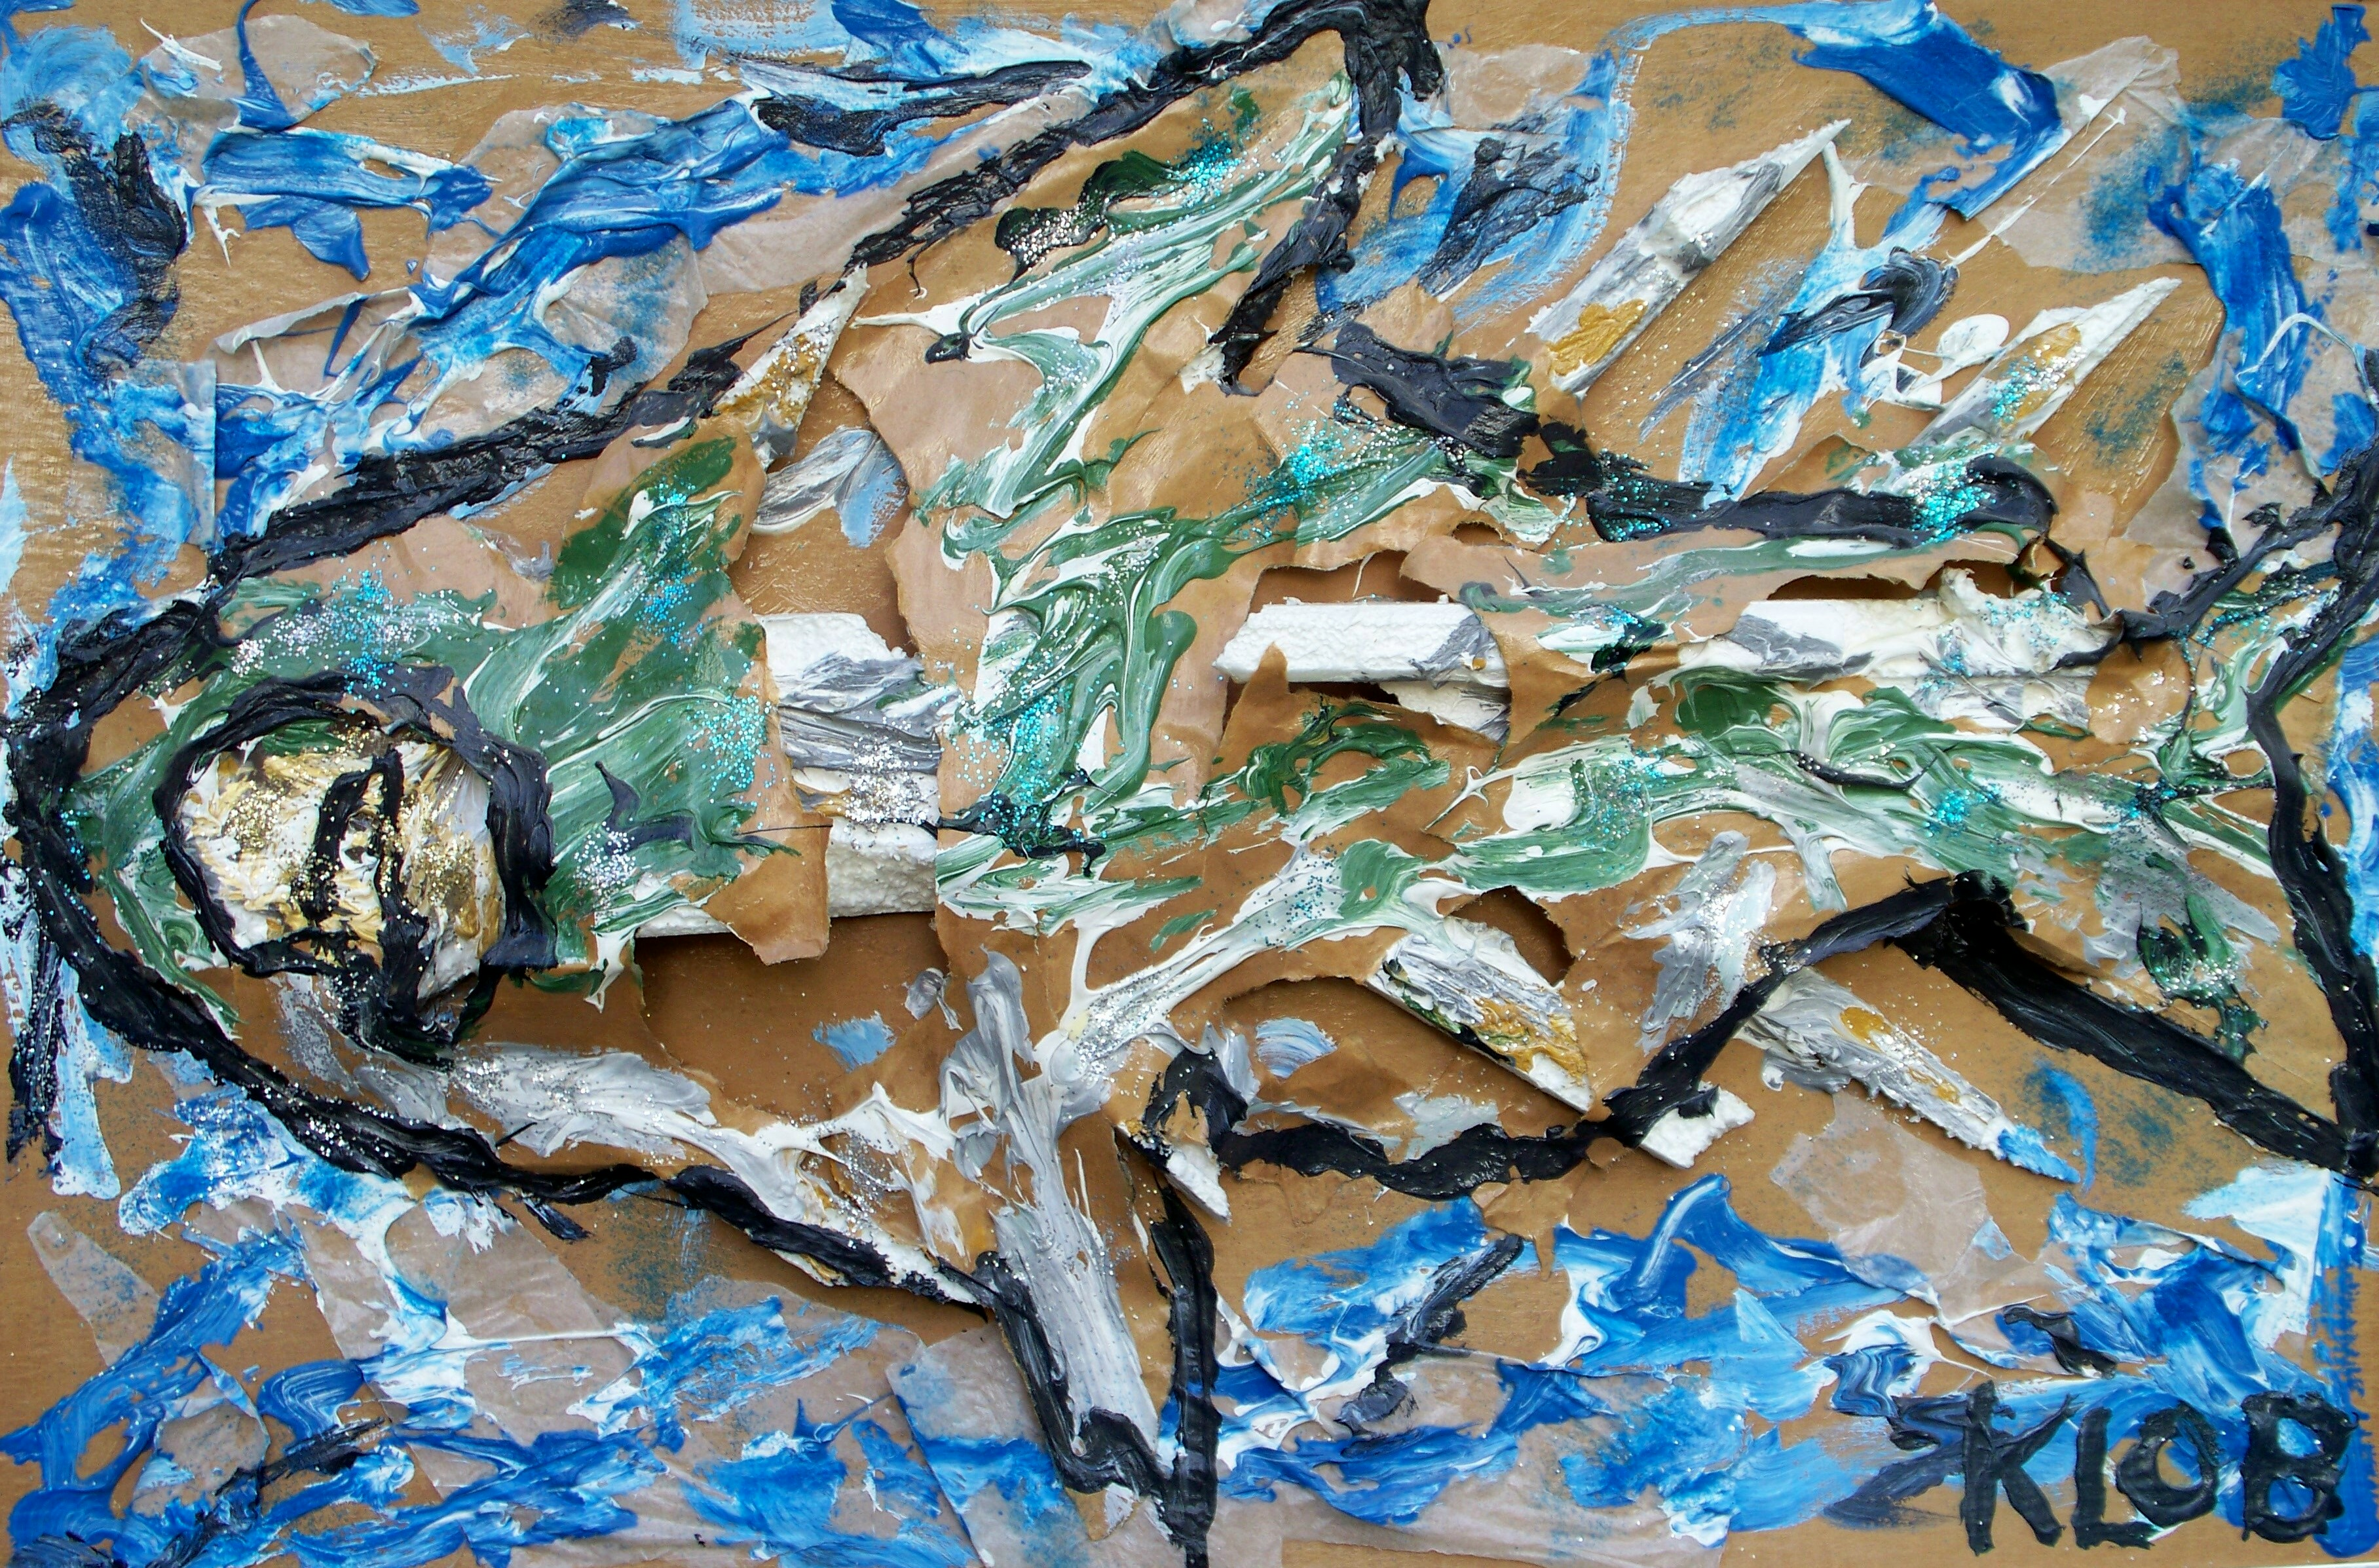 2004; acrylic, brown paper bag, styrofoam, wax paper; 24 in X 36 in